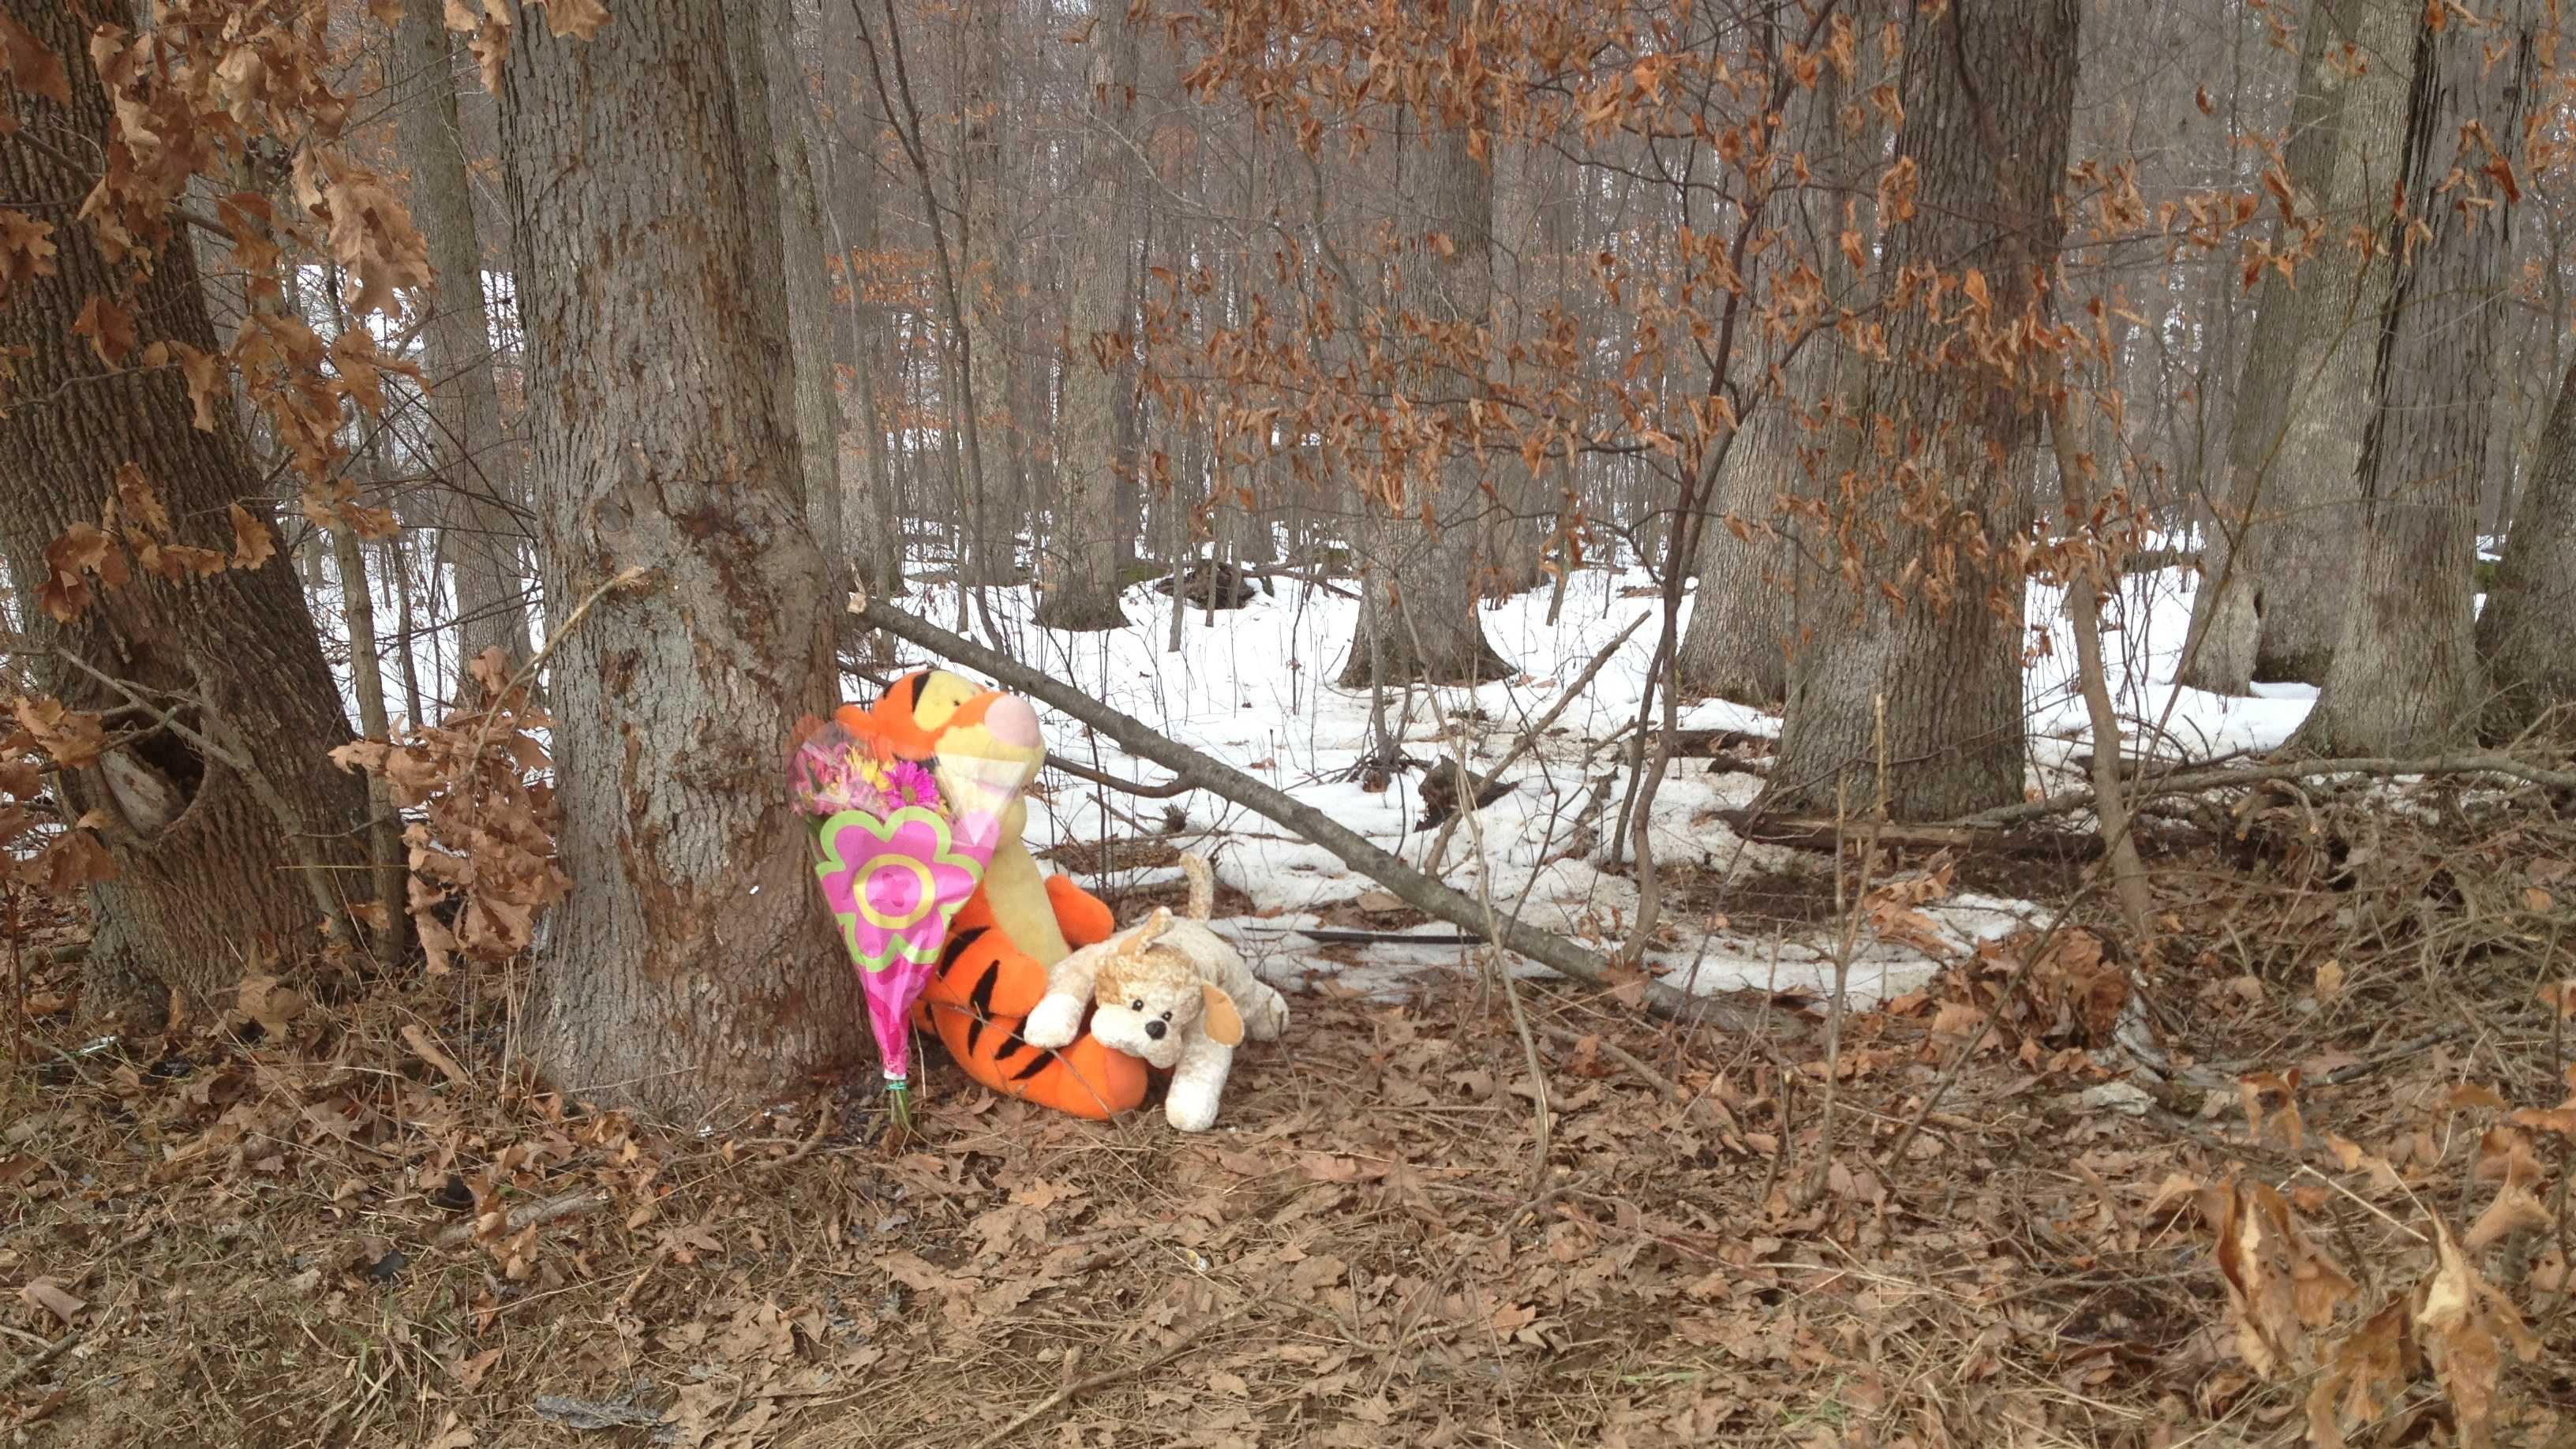 Flowers and stuffed animals were placed at the crash scene where two young boys died in Connoquenessing.